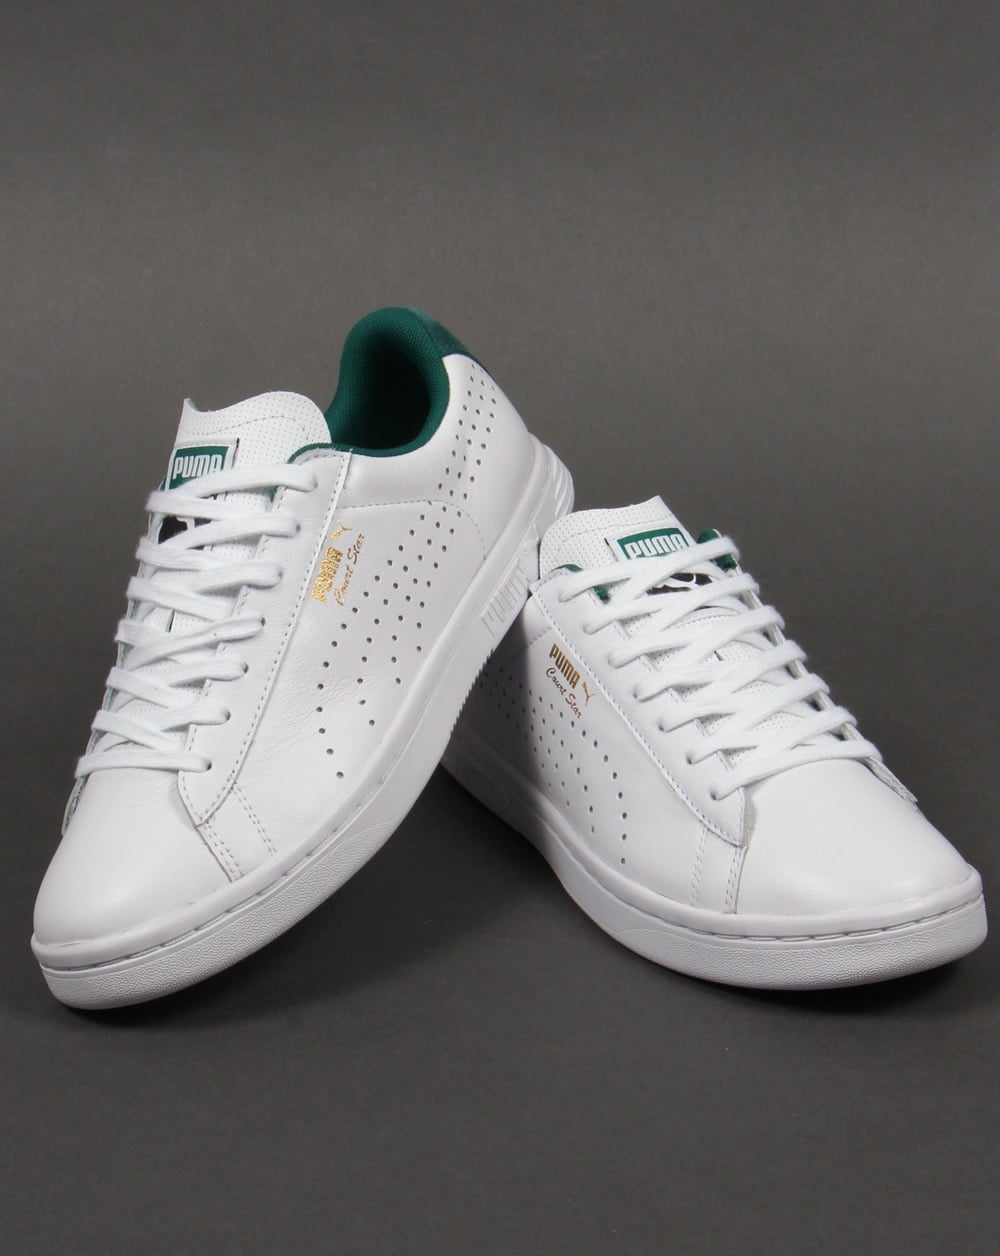 huge selection of 2e194 93555 Puma Court Star Crafted Trainers White/Green